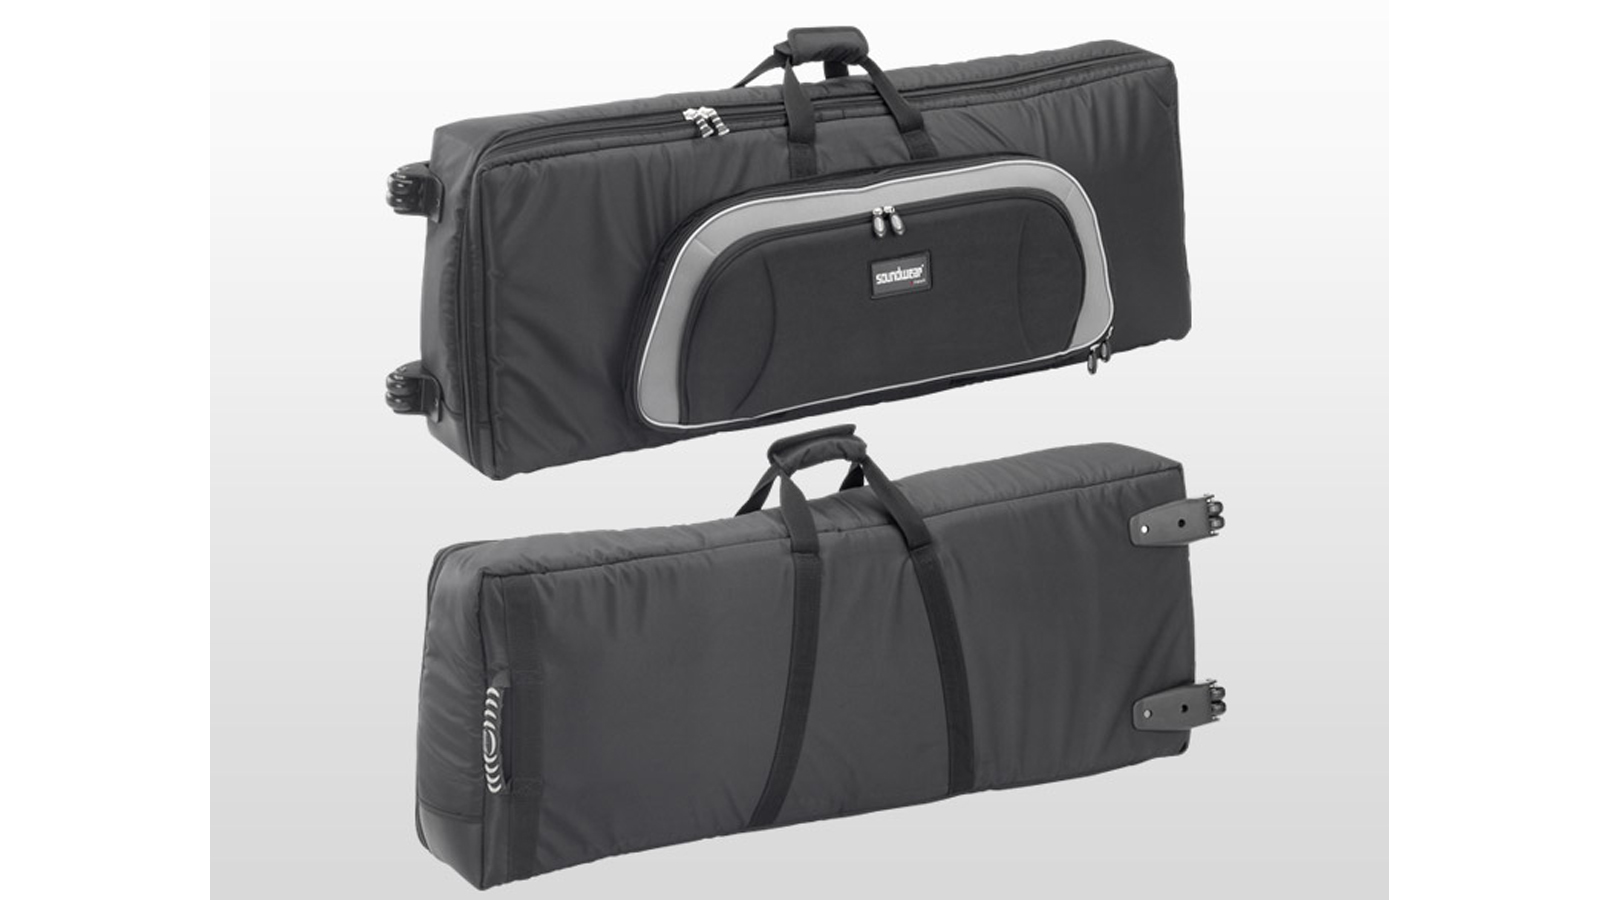 Soundwear Keyboard Bag Professional 140 x 42 x 18 cm